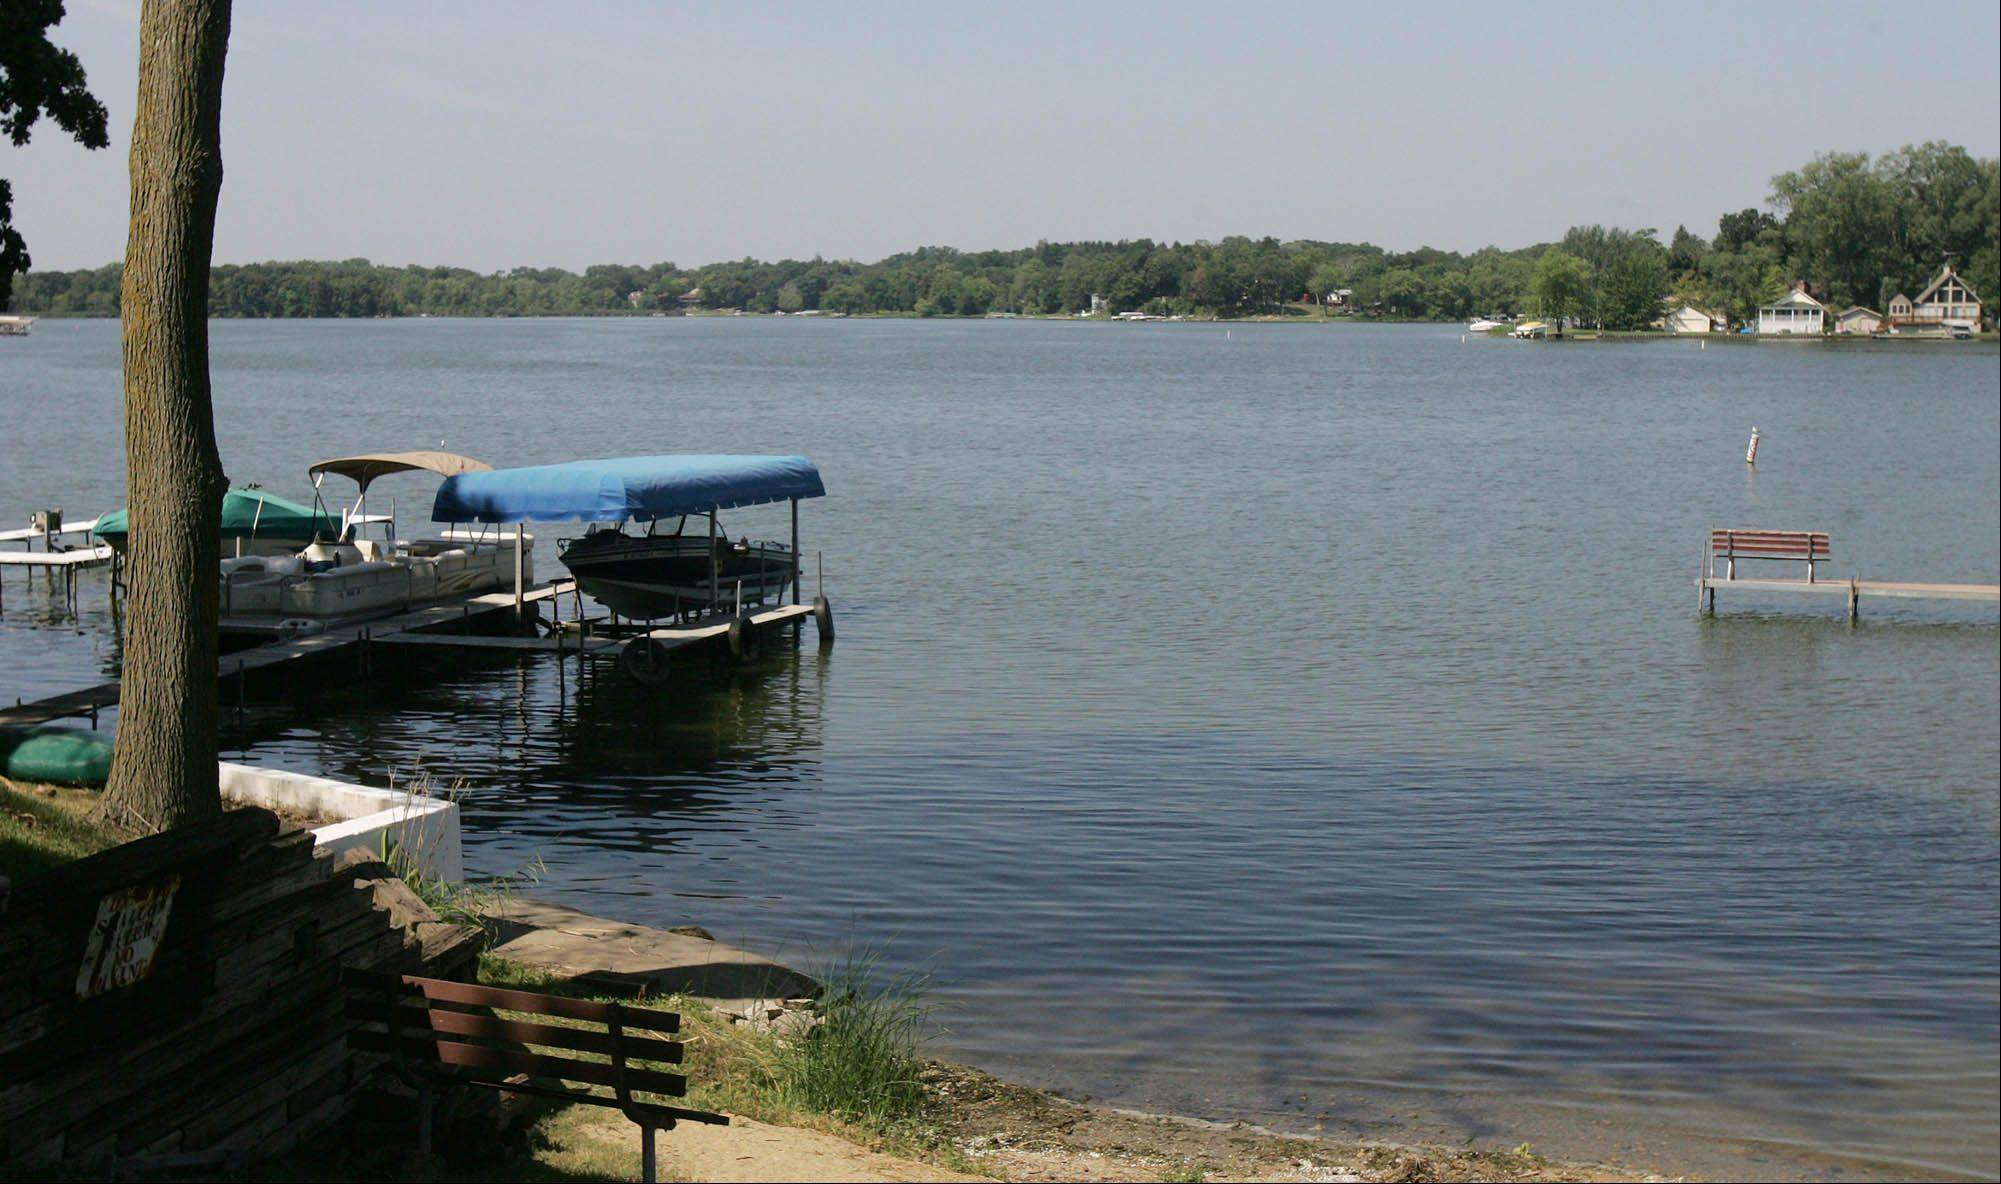 Petite Lake near Lake Villa was significantly less crowded with boat traffic Monday than over the weekend, when a 10-year-old Libertyville boy was killed in a boating accident. Authorities are still investigating the death, which occurred when the boy fell from an inner tube and was struck by a boat.